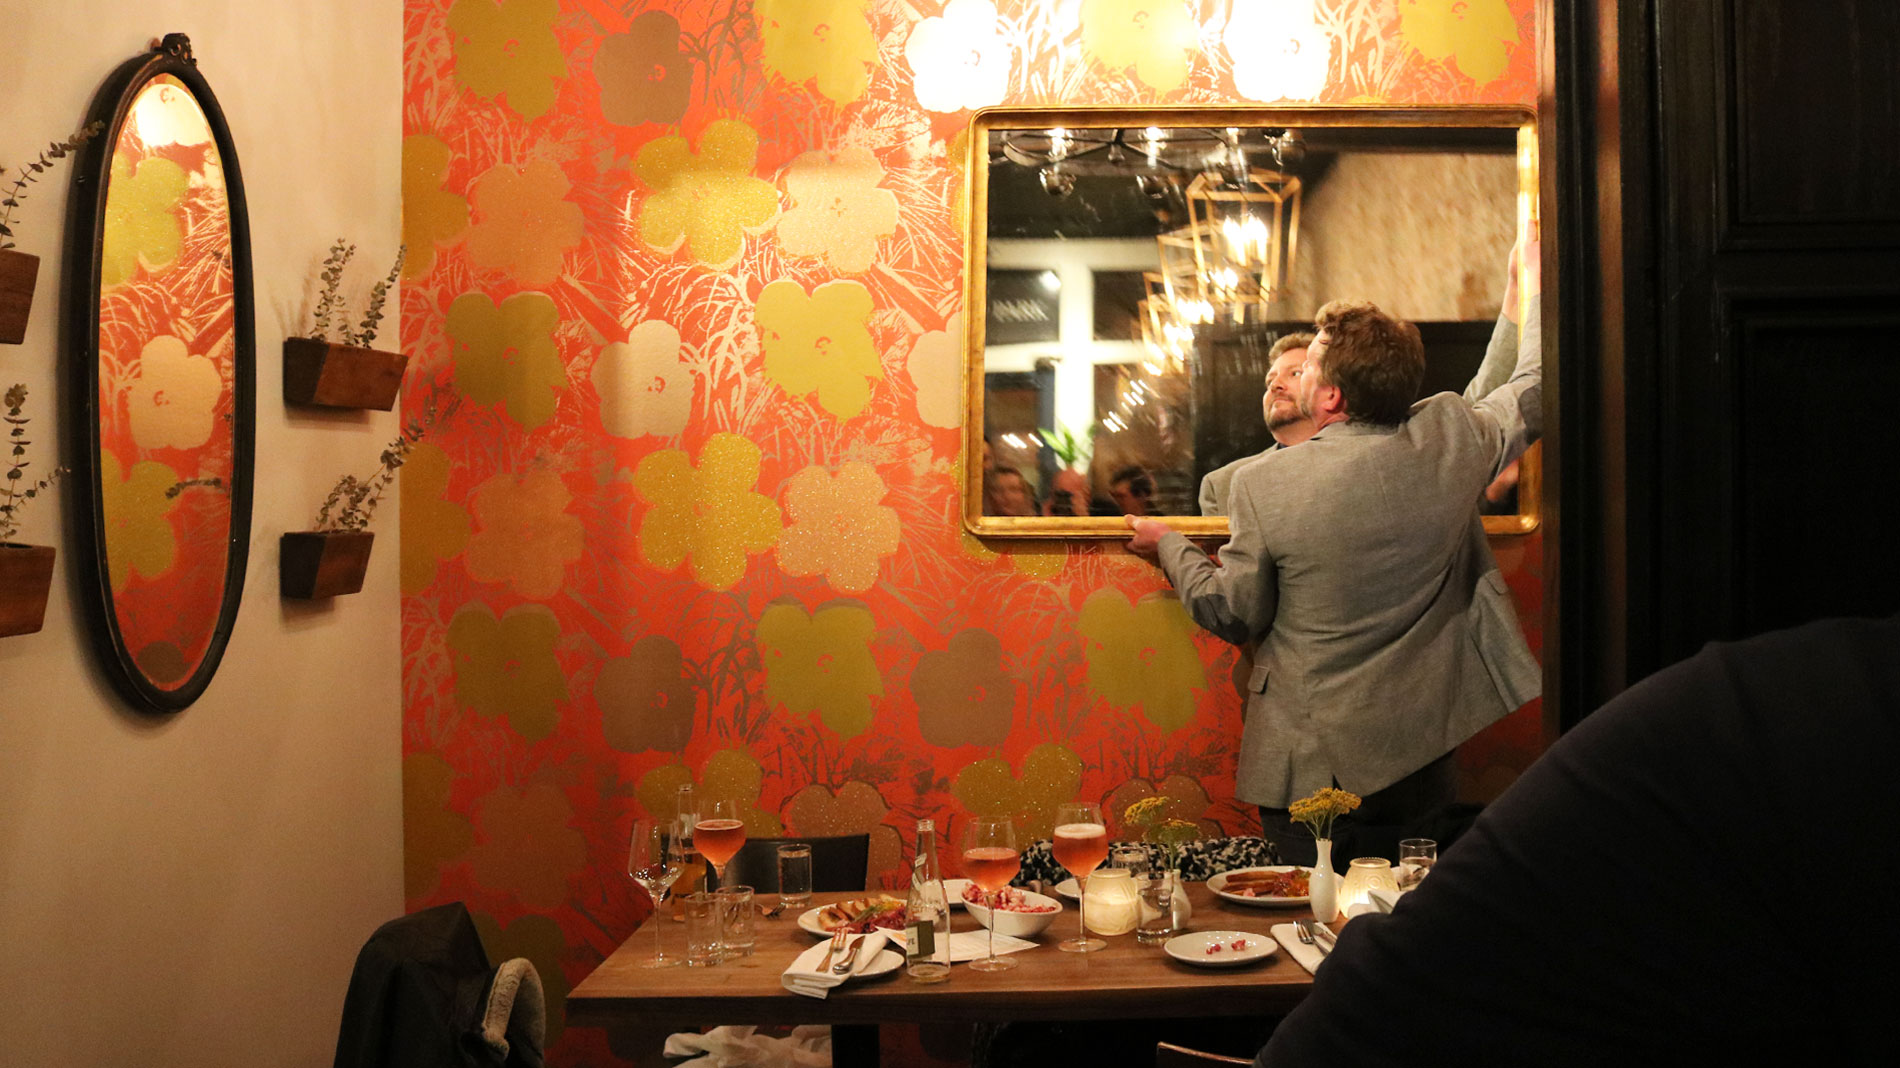 a man adjusting a large gilt mirror in a restaurant